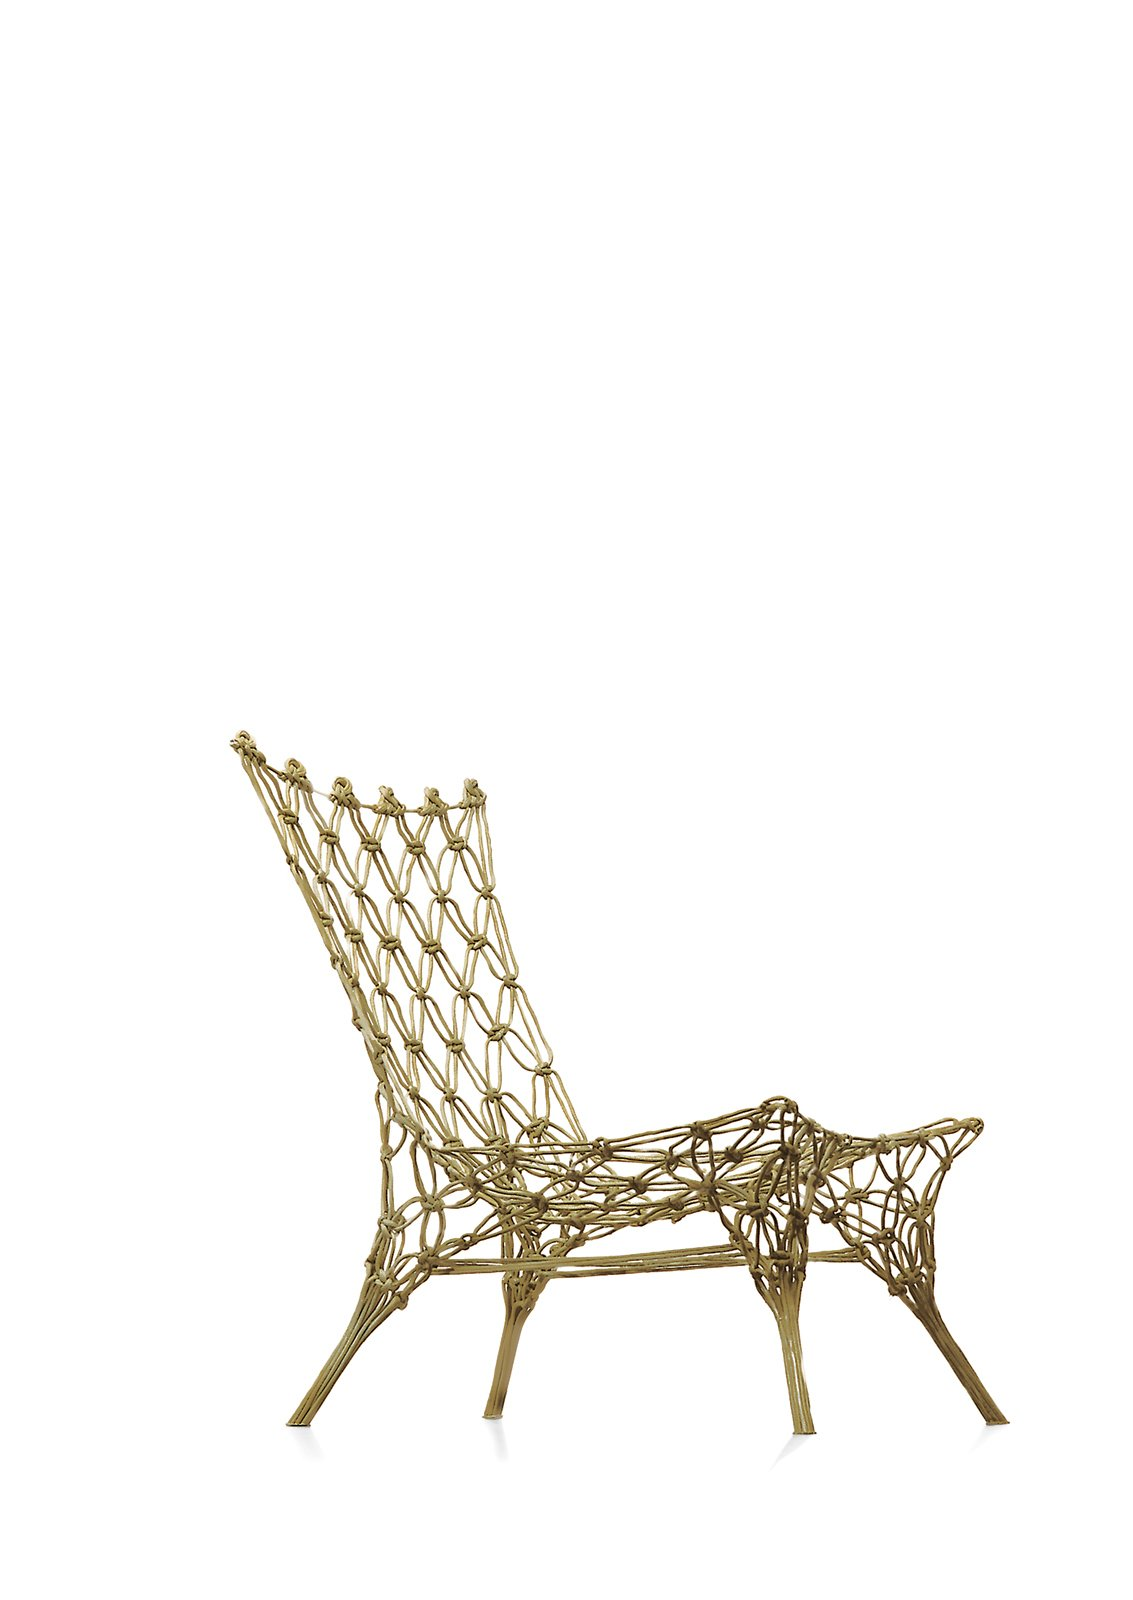 Marcel Wanders's Knotted chair.  Photo 4 of 10 in Favorite Chairs from Renny Ramakers